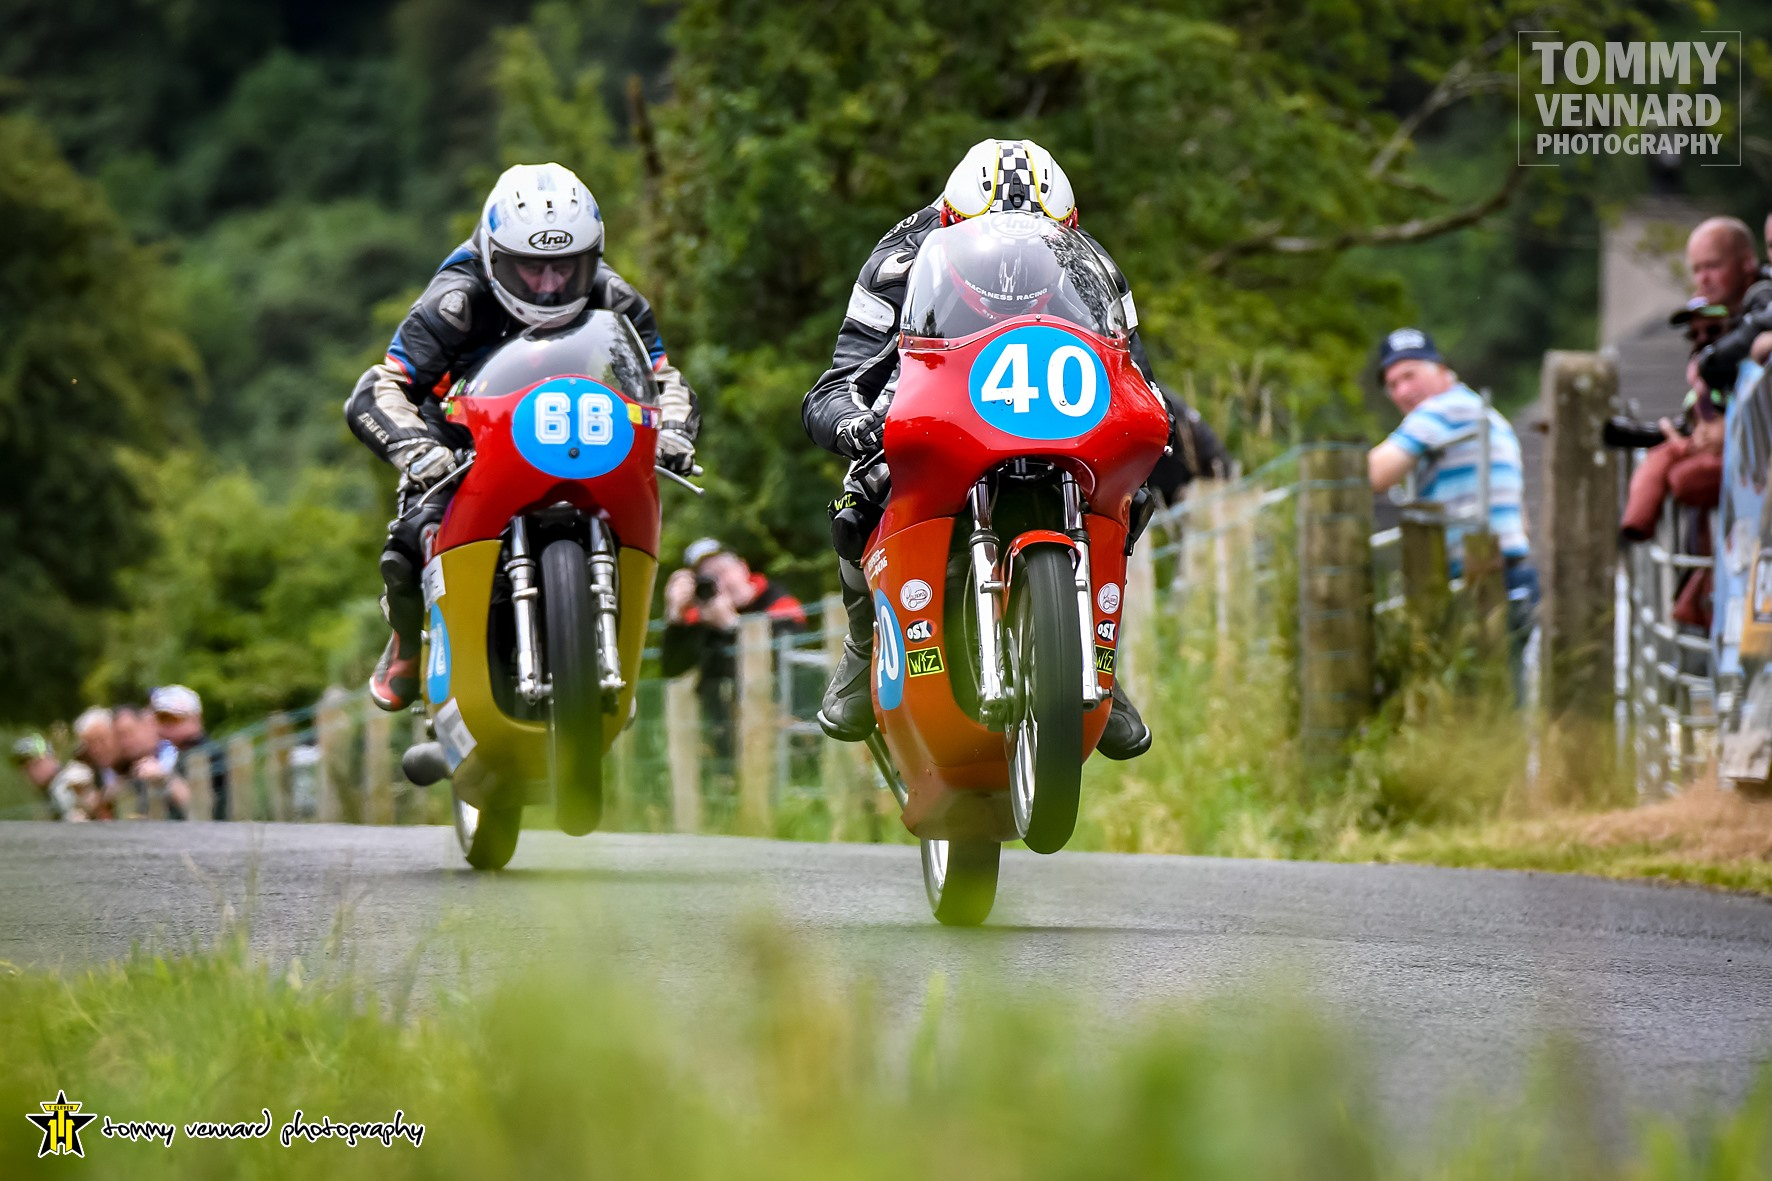 Armoy Preview Part 3: 250/400/125/Moto 3/Support/Yesteryear Classes